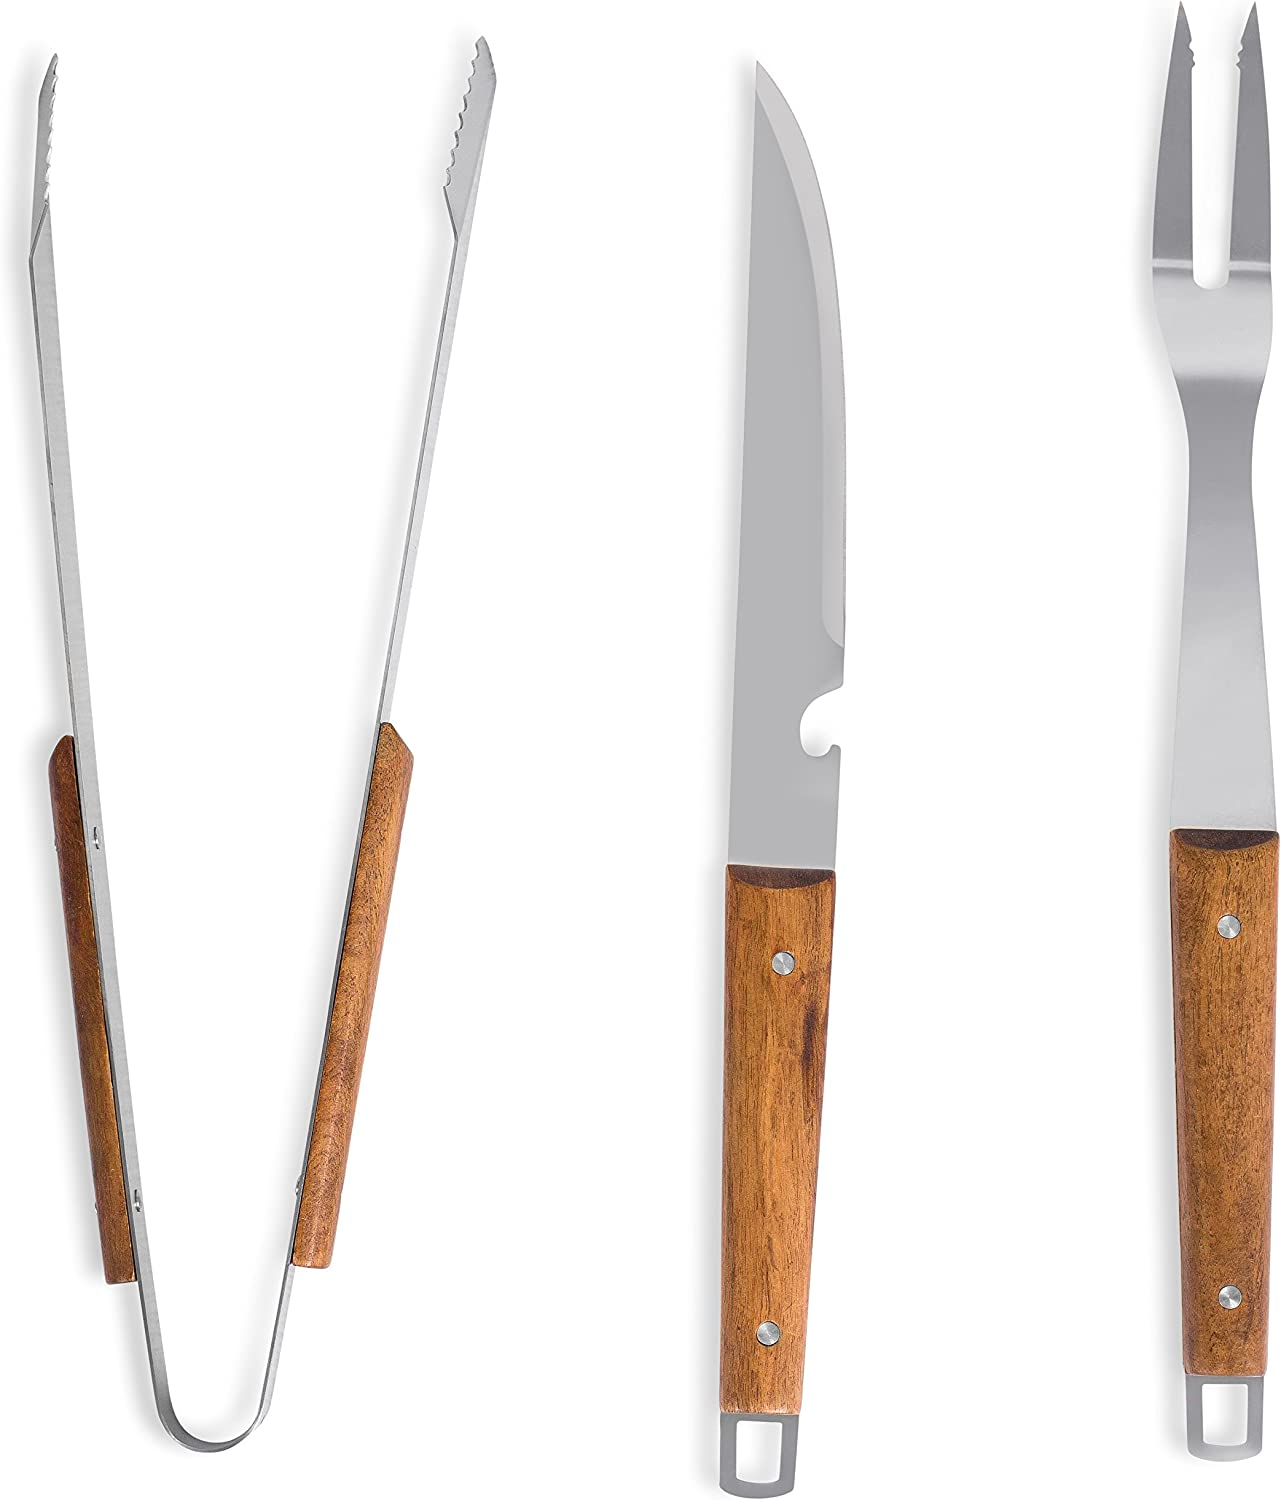 Long Wooden Handle Spatula Barbeque Fork and Serrated Tong Meat Grabbers Smoker Charcoal Gas Electric Cooking Utensils Internets Best Internet/â/€s Best 3-Piece BBQ Grilling Utensil Set